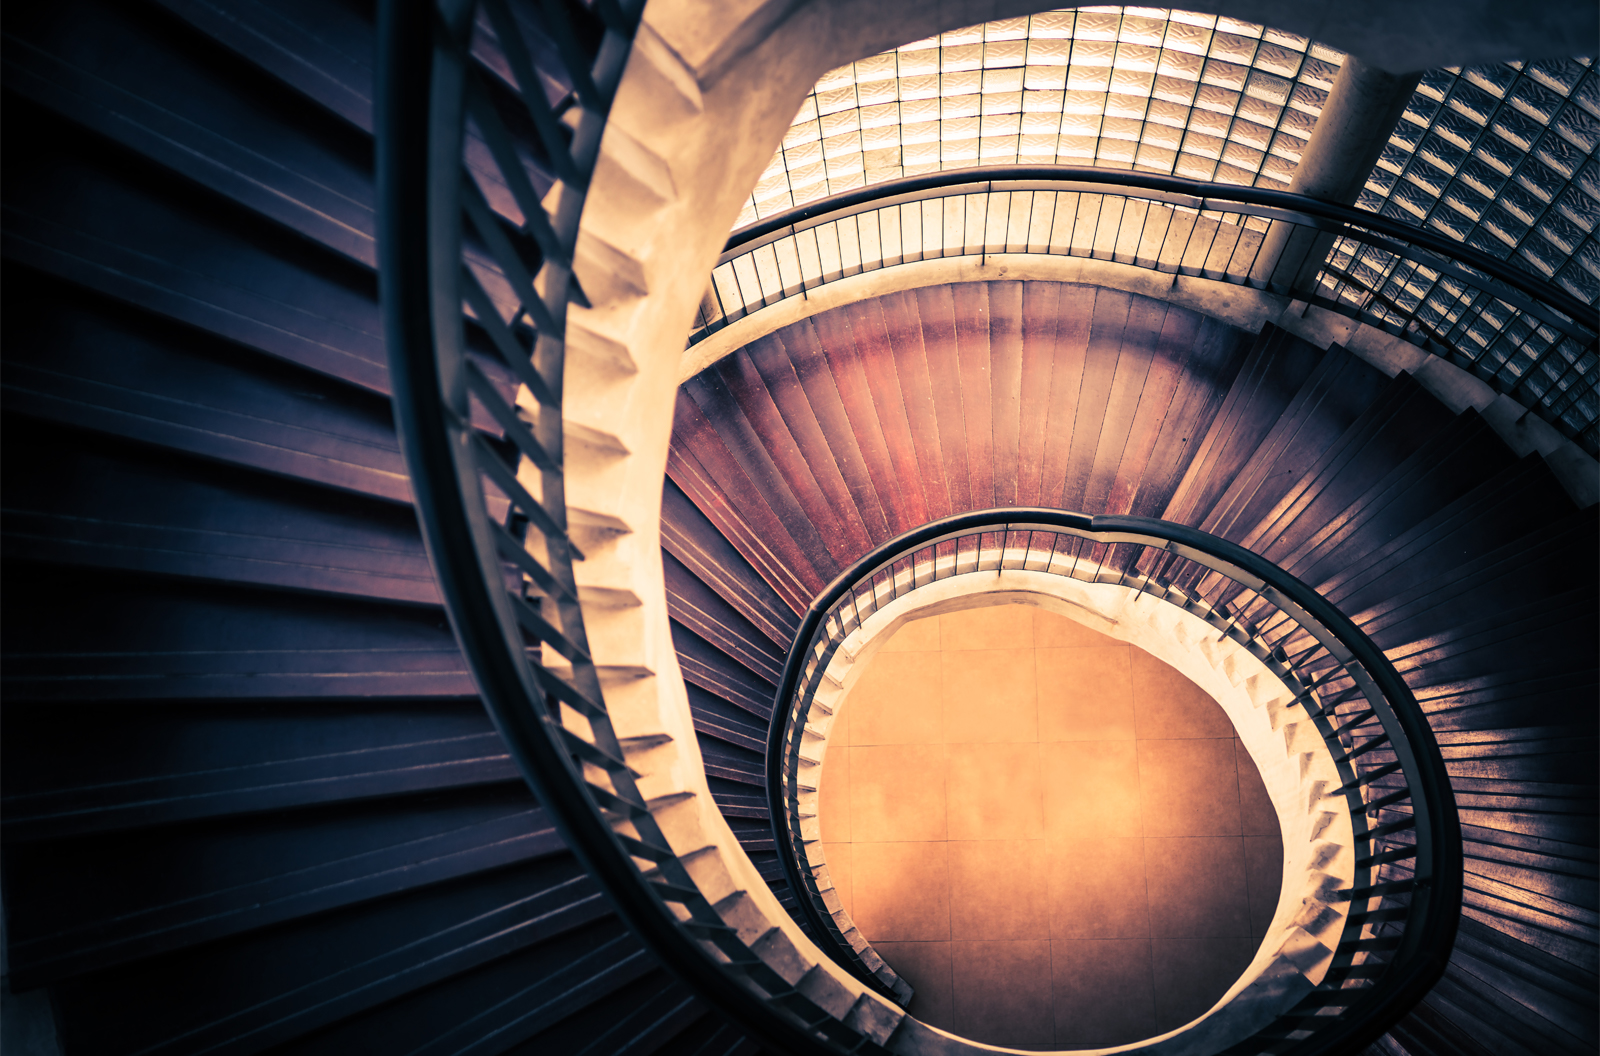 Top view of a spiral staircase to illustrate the Fibonacci Spiral in architecture